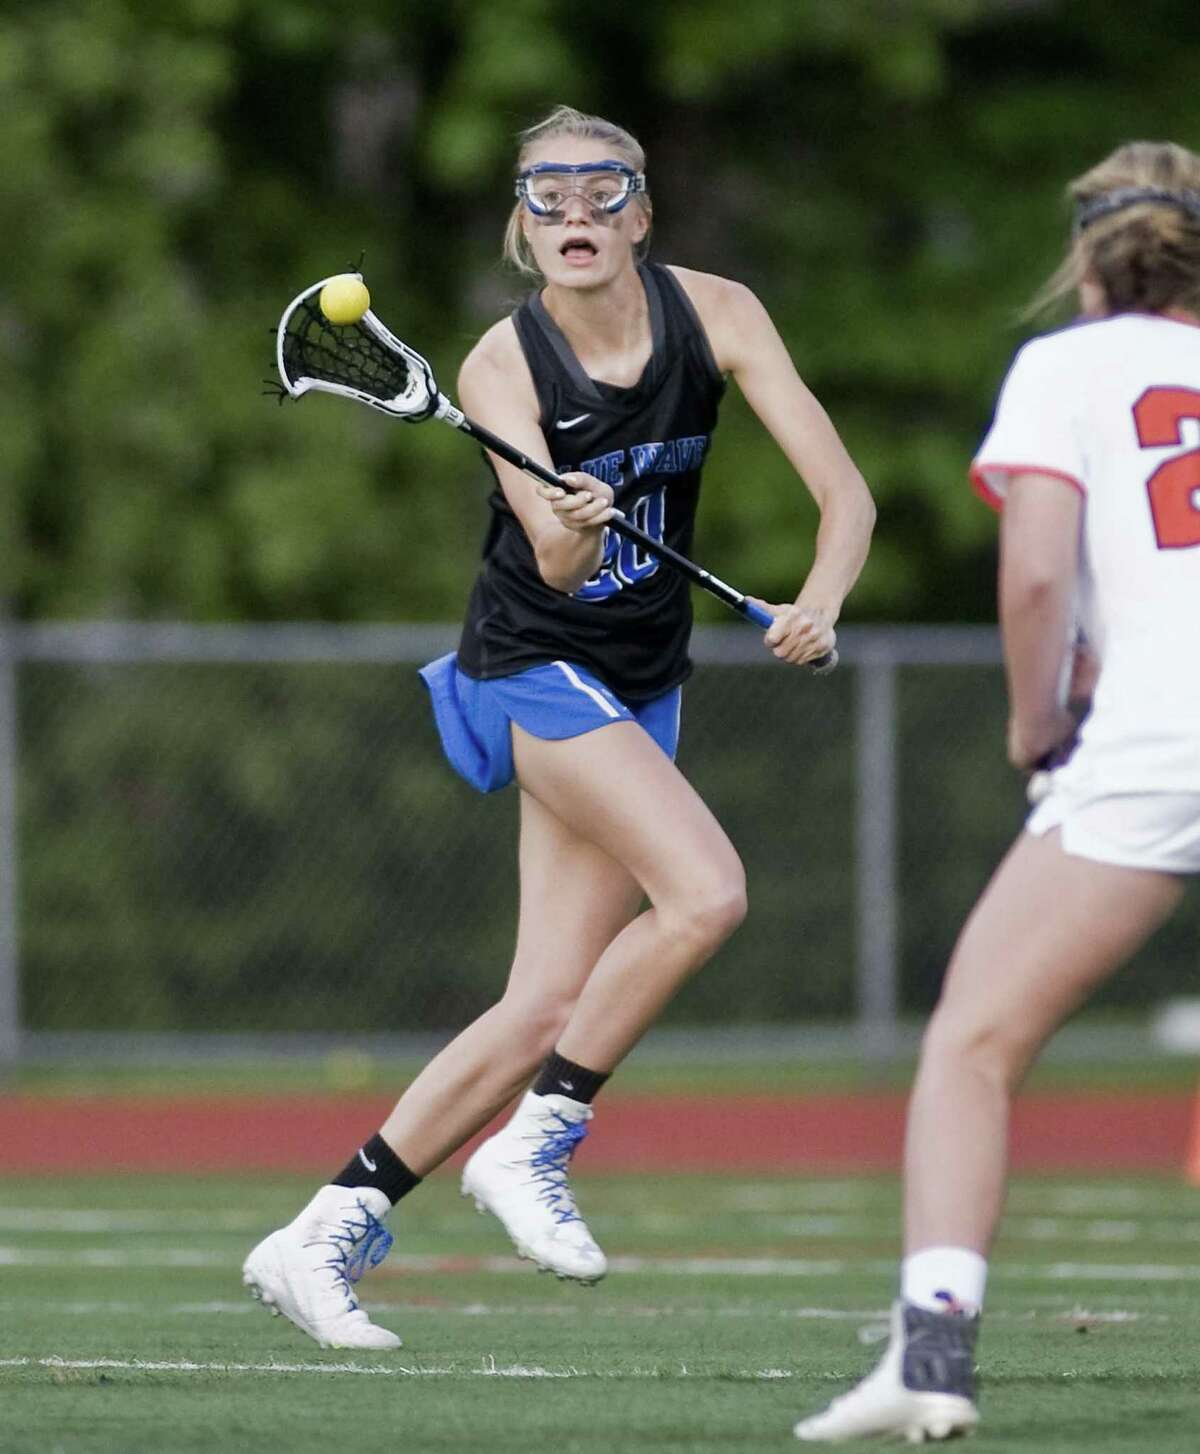 Darien High School's Katie Ramsay receives the ball in the FCIAC girls lacrosse finals against Ridgefield High School, played at Norwalk High School. Wednesday, May 24, 2017